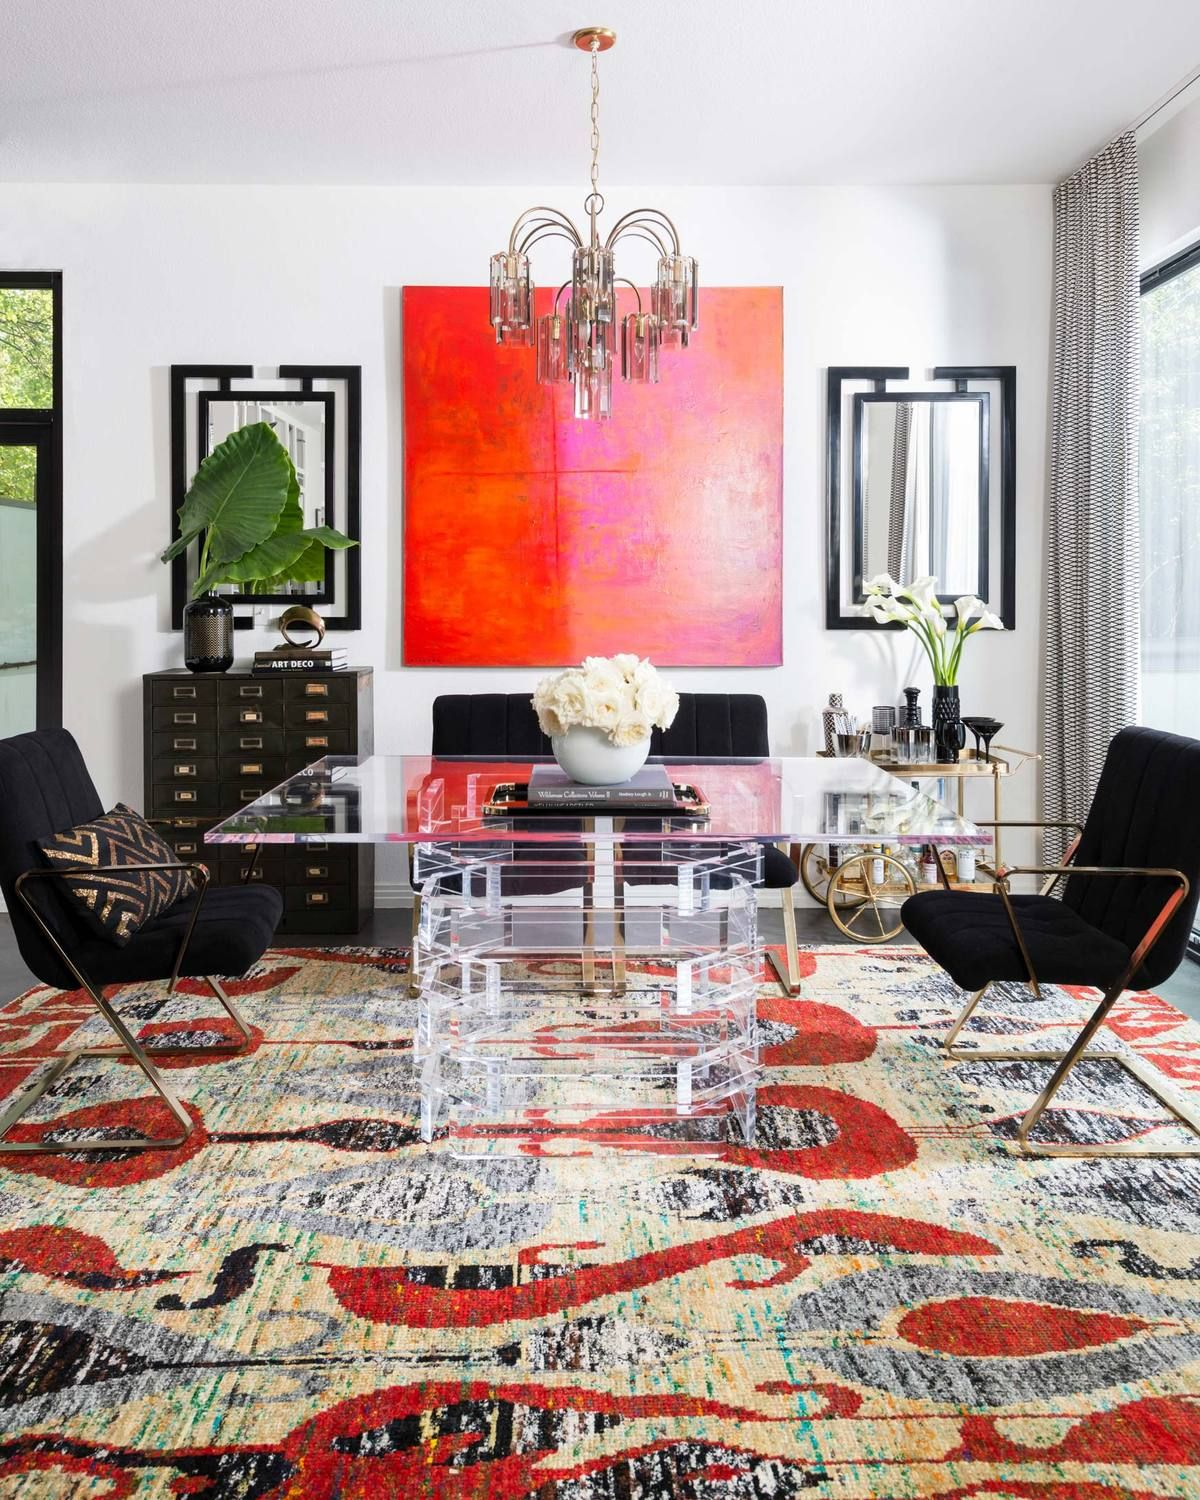 If You Want To Make A Statement Modern Rugs Like This One With Bold Colors And Patterns Are An In 2020 Area Rug Dining Room Area Room Rugs Dining Room Decor